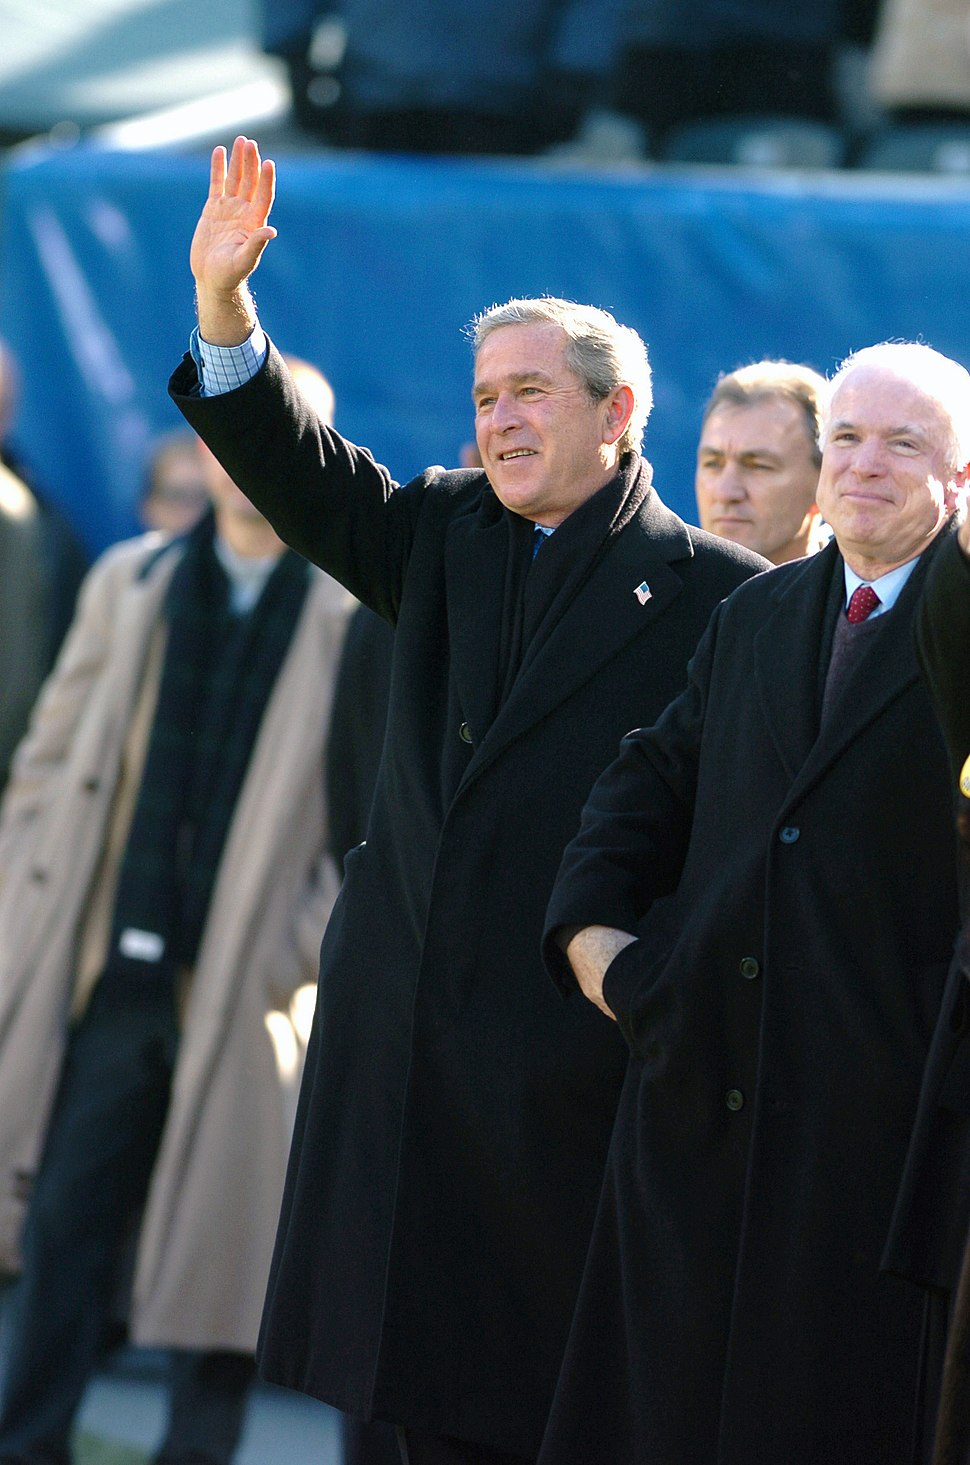 George W. Bush and John McCain at the Navy goal line 2004